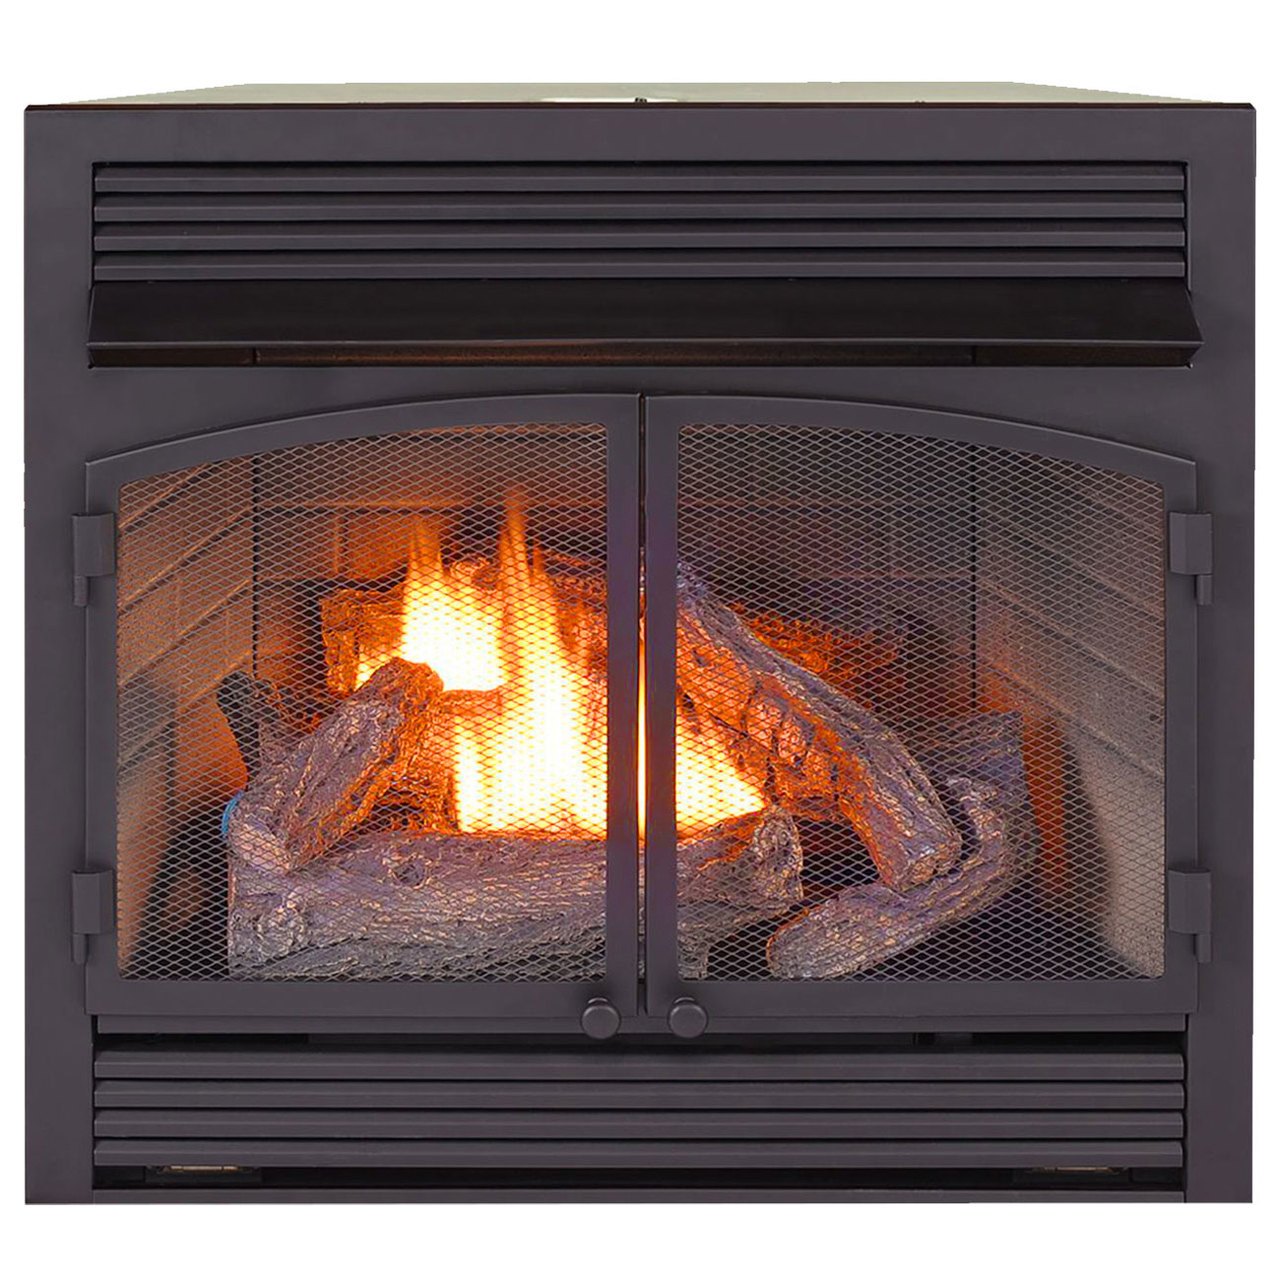 Procom Heating Dual Fuel Ventless Gas Fireplace Insert